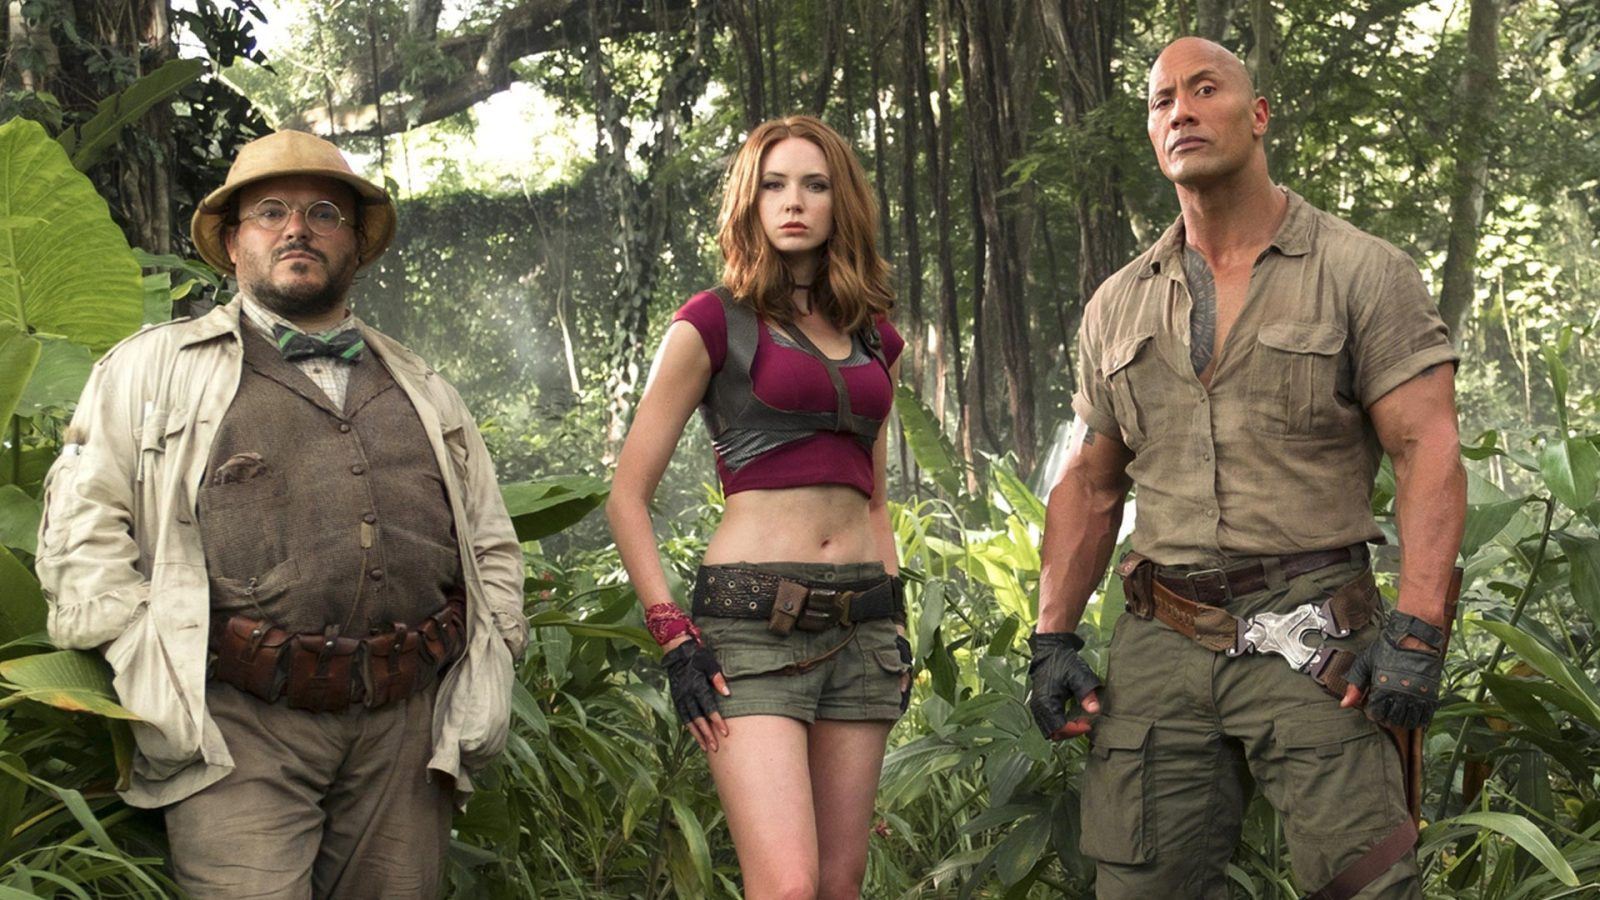 4K movies from $10: Jumanji, Harry Potter Collection, Dark Knight 3-Pack, more